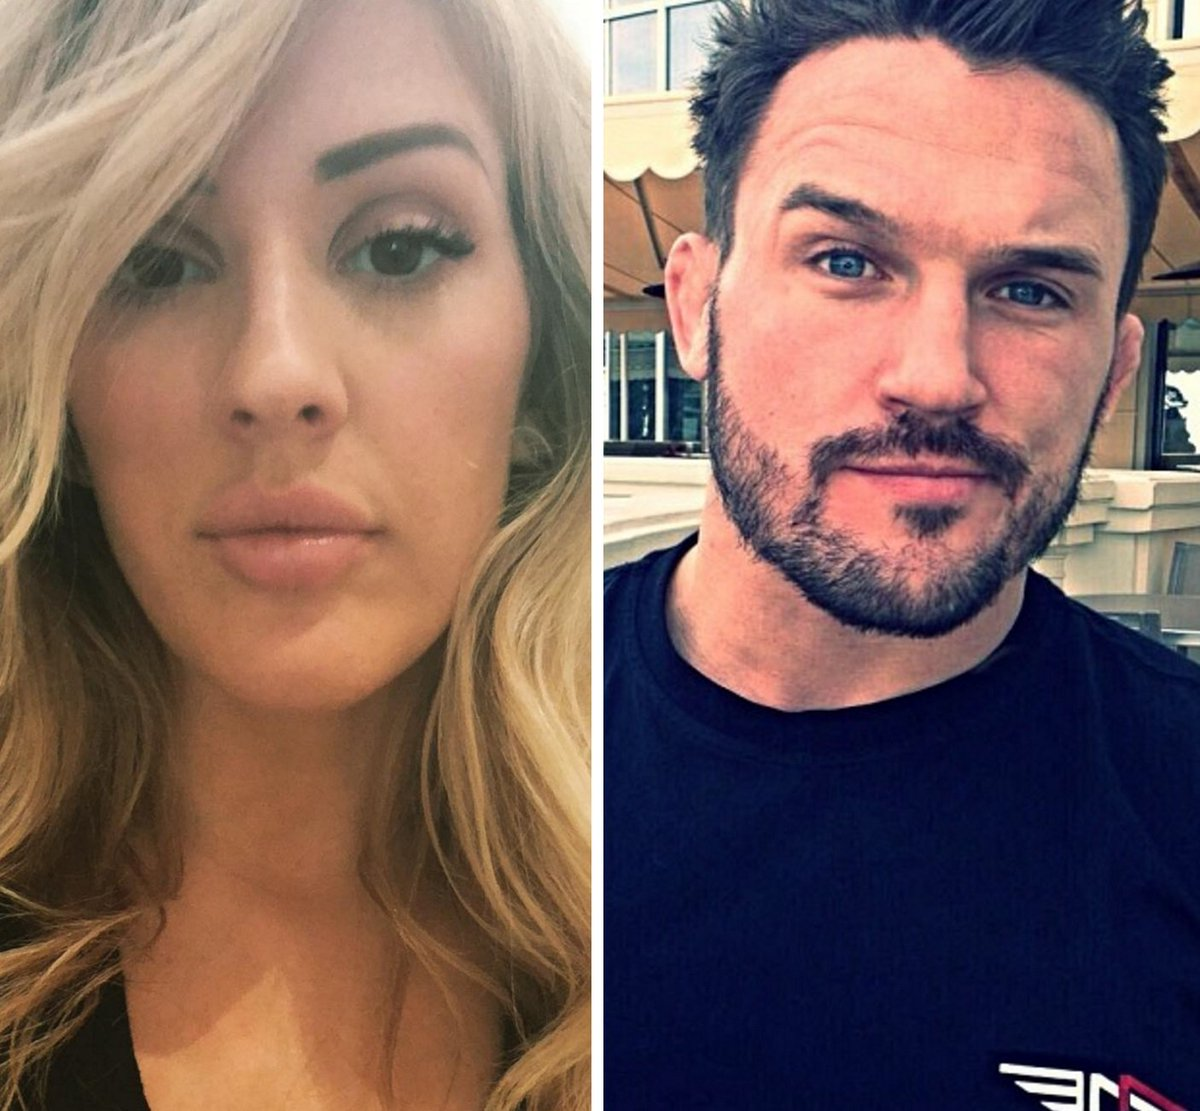 dating a personal trainer Personal trainer raped, beat and robbed secretary he met on dating website a rapist who attacked a secretary during an internet date was jailed yesterday as the court heard he switched after she refused him a good night kiss on her doorstep.